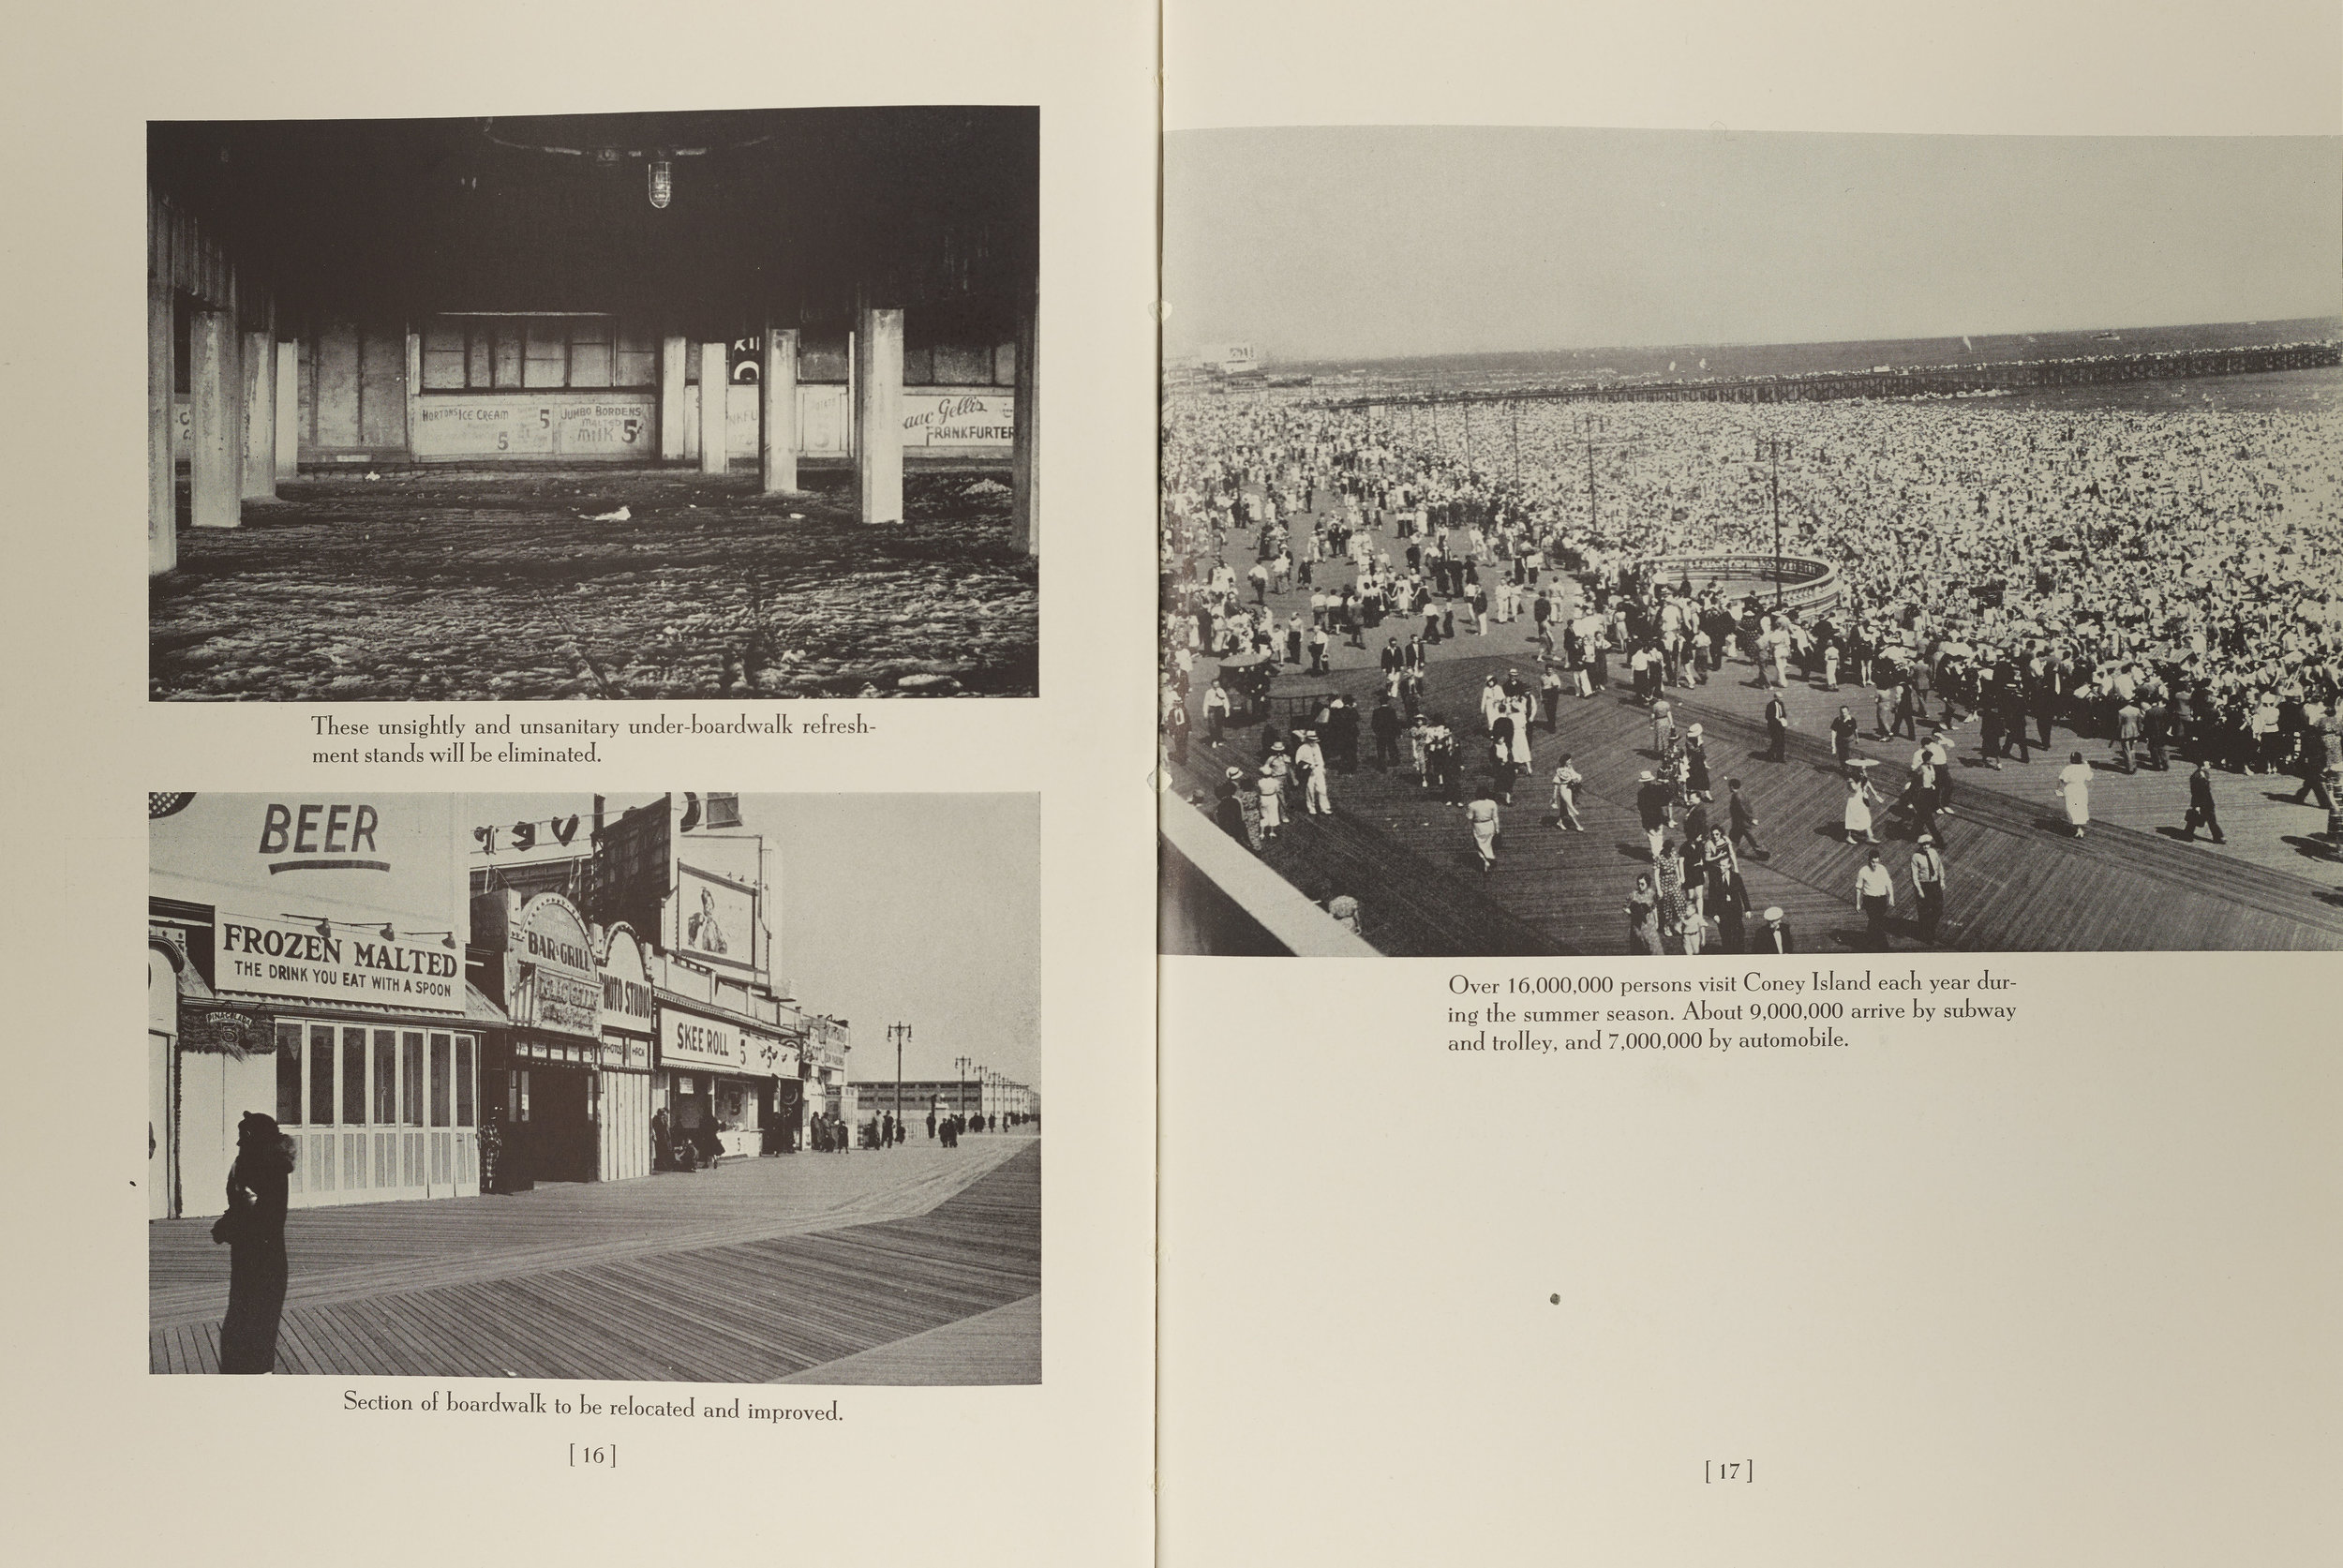 Report on Coney Island Improvements, 1939. NYC Municipal Library.